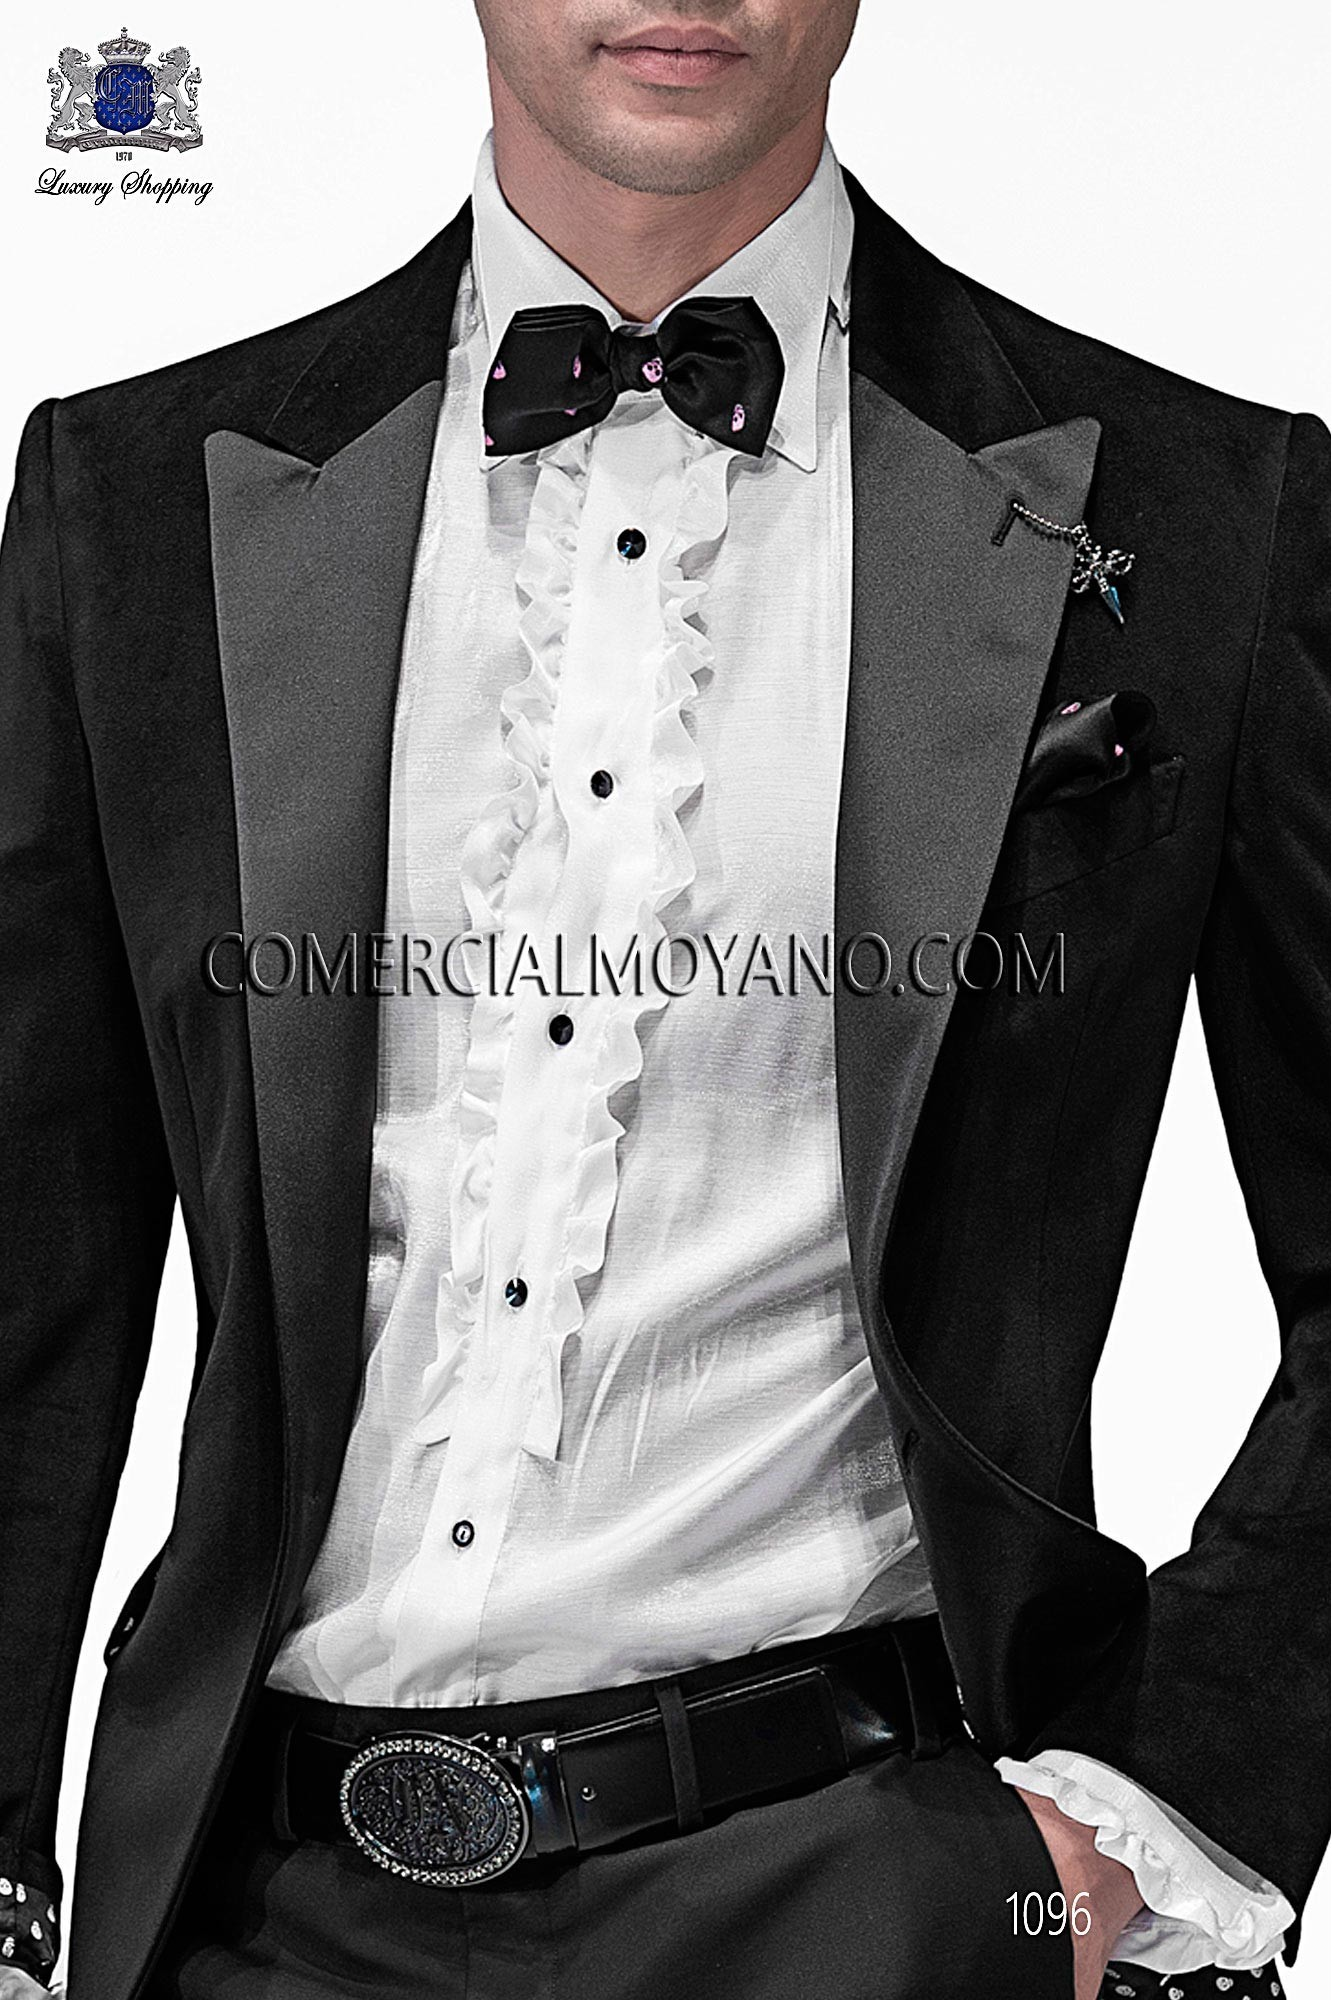 Italian emotion black men wedding suit, model: 1096 Ottavio Nuccio Gala Emotion Collection